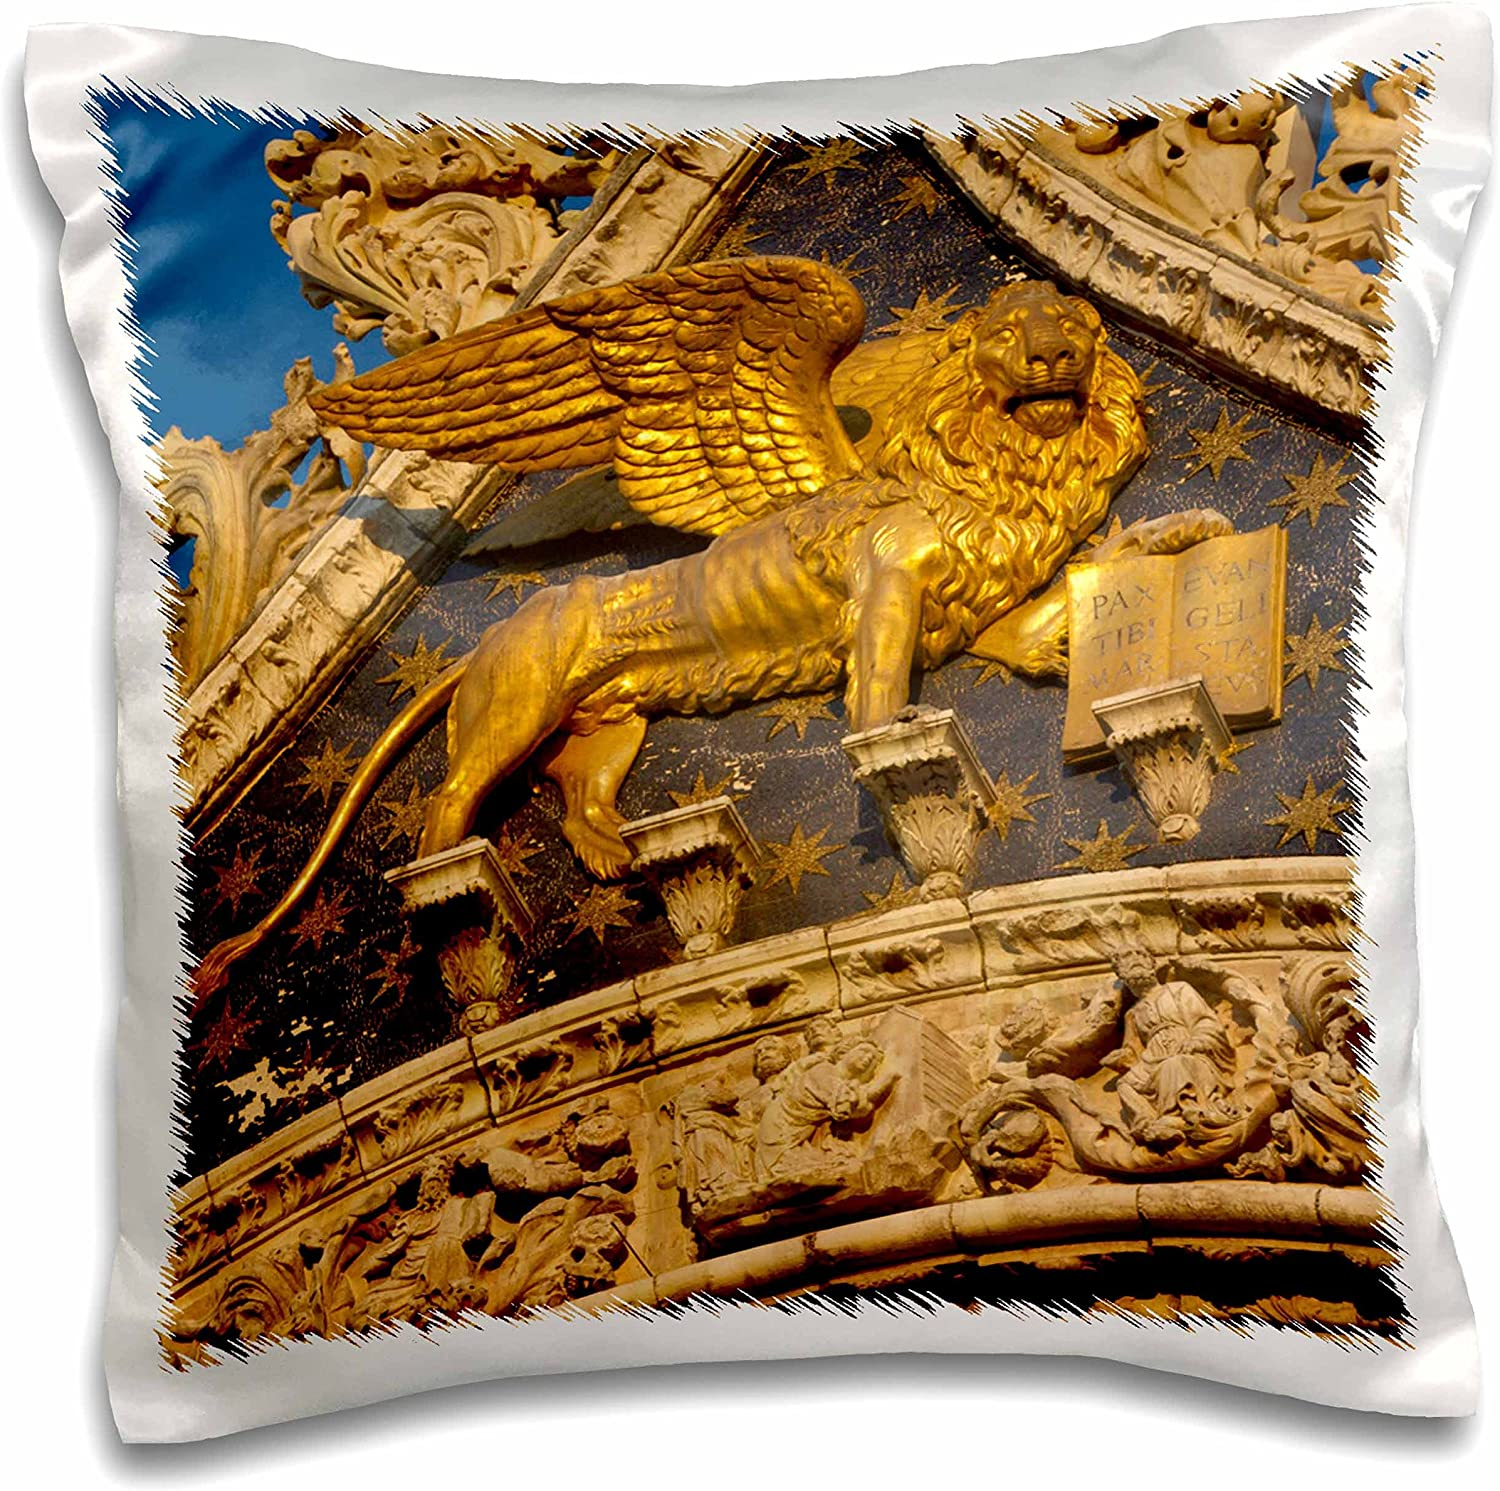 Amazon Com 3drose Italy Venice Lion Of San Marco Basilica Eu16 Bjy0006 Jaynes Gallery Pillow Case 16 By 16 Pc 137726 1 Arts Crafts Sewing